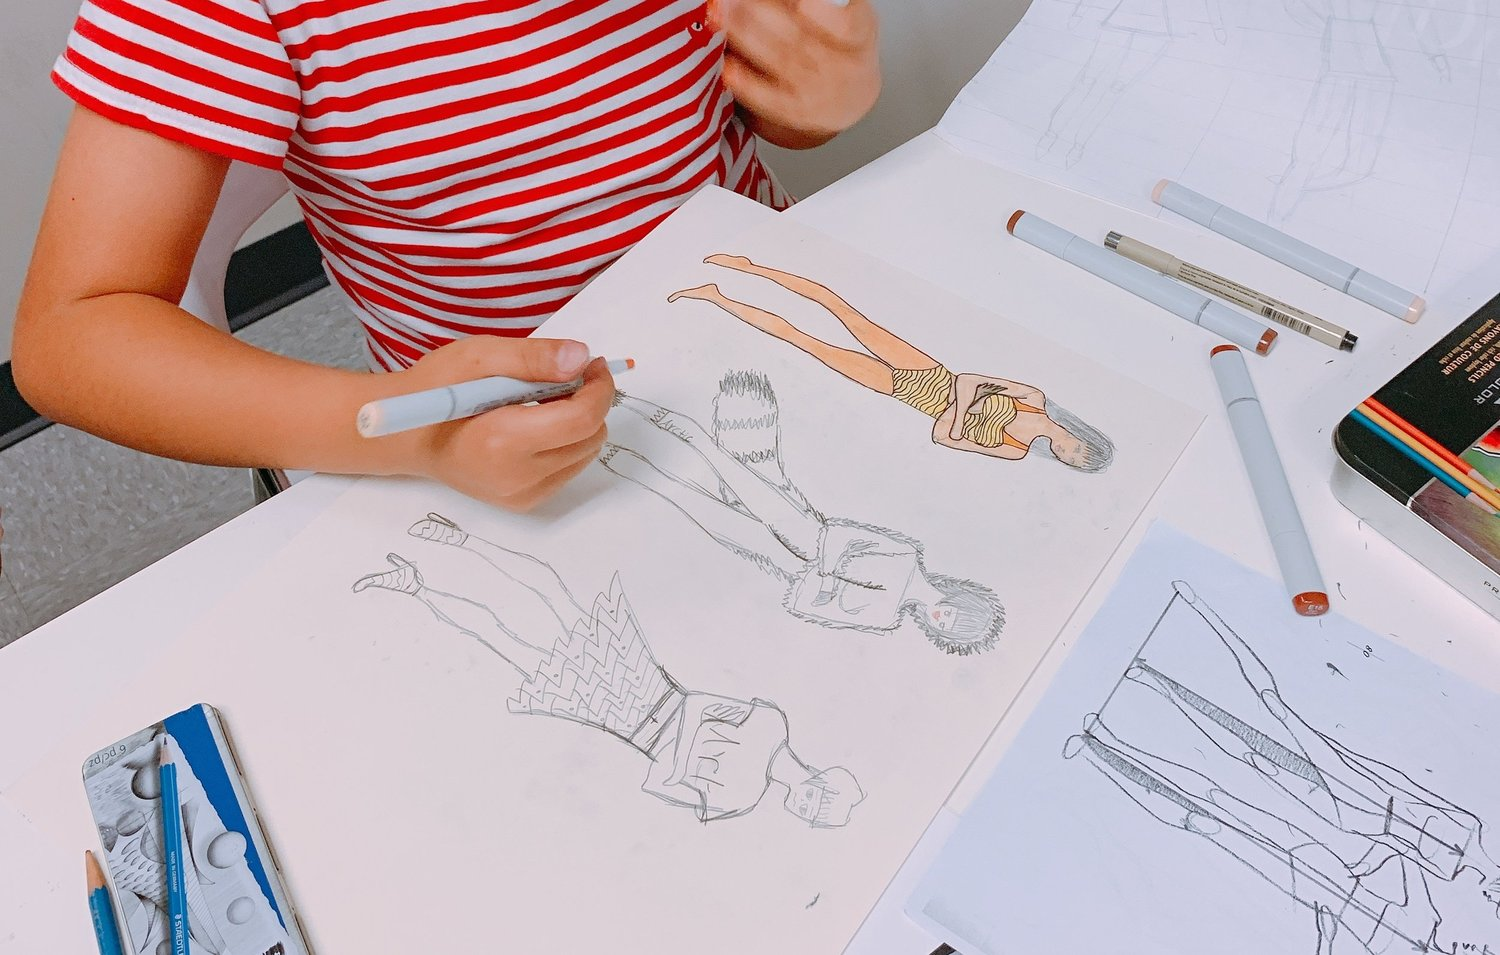 FASHION CLASS - Students will learn how to do figure drawing, fashion illustration, and clothing design.